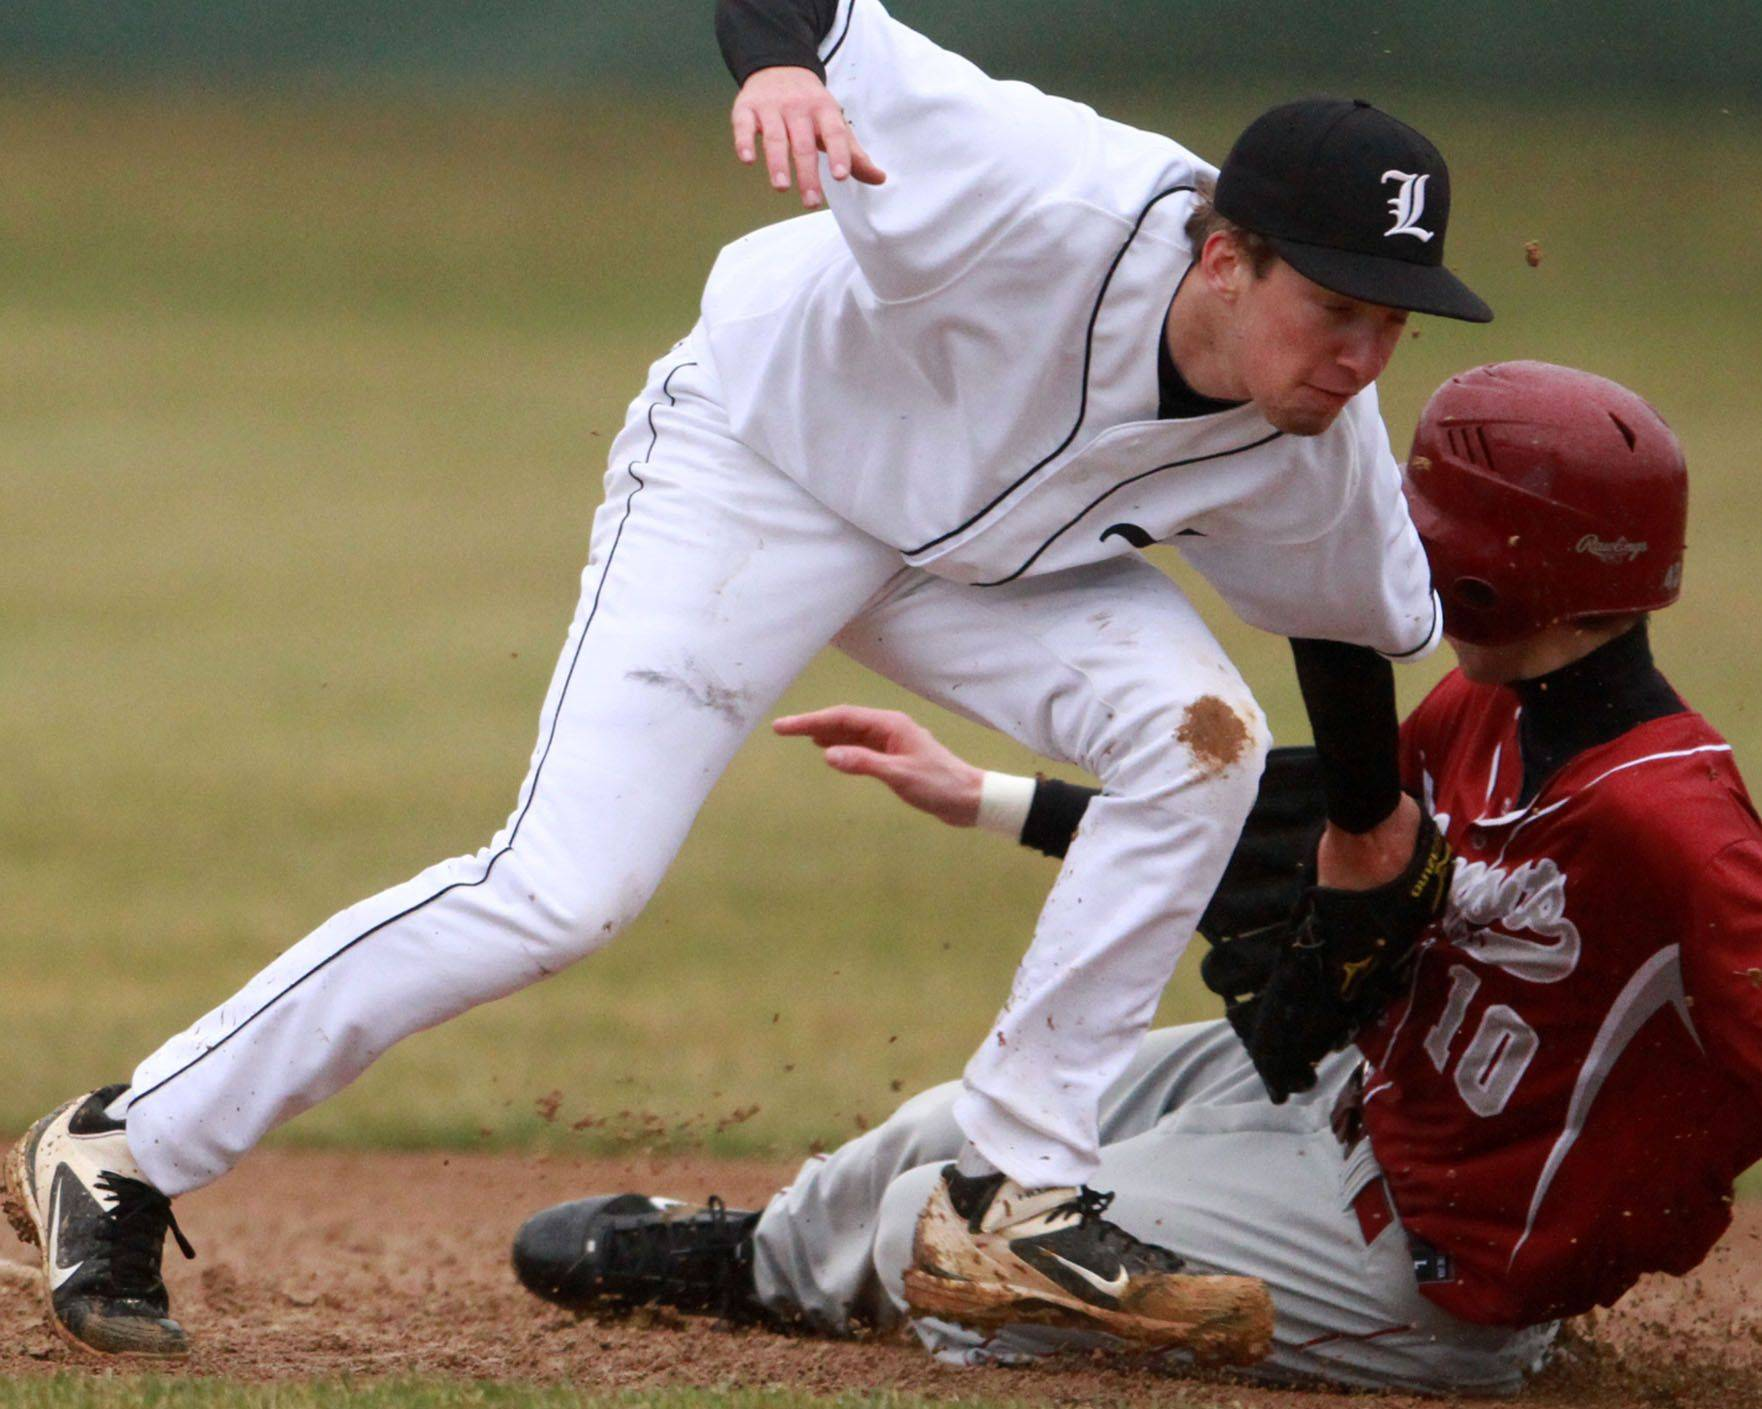 Antioch's Mitch Everett slides into second base as Libertyville shortstop Jimmy Govern just misses the tag; Everett was sent back to first after an interference call at Libertyville on Friday.